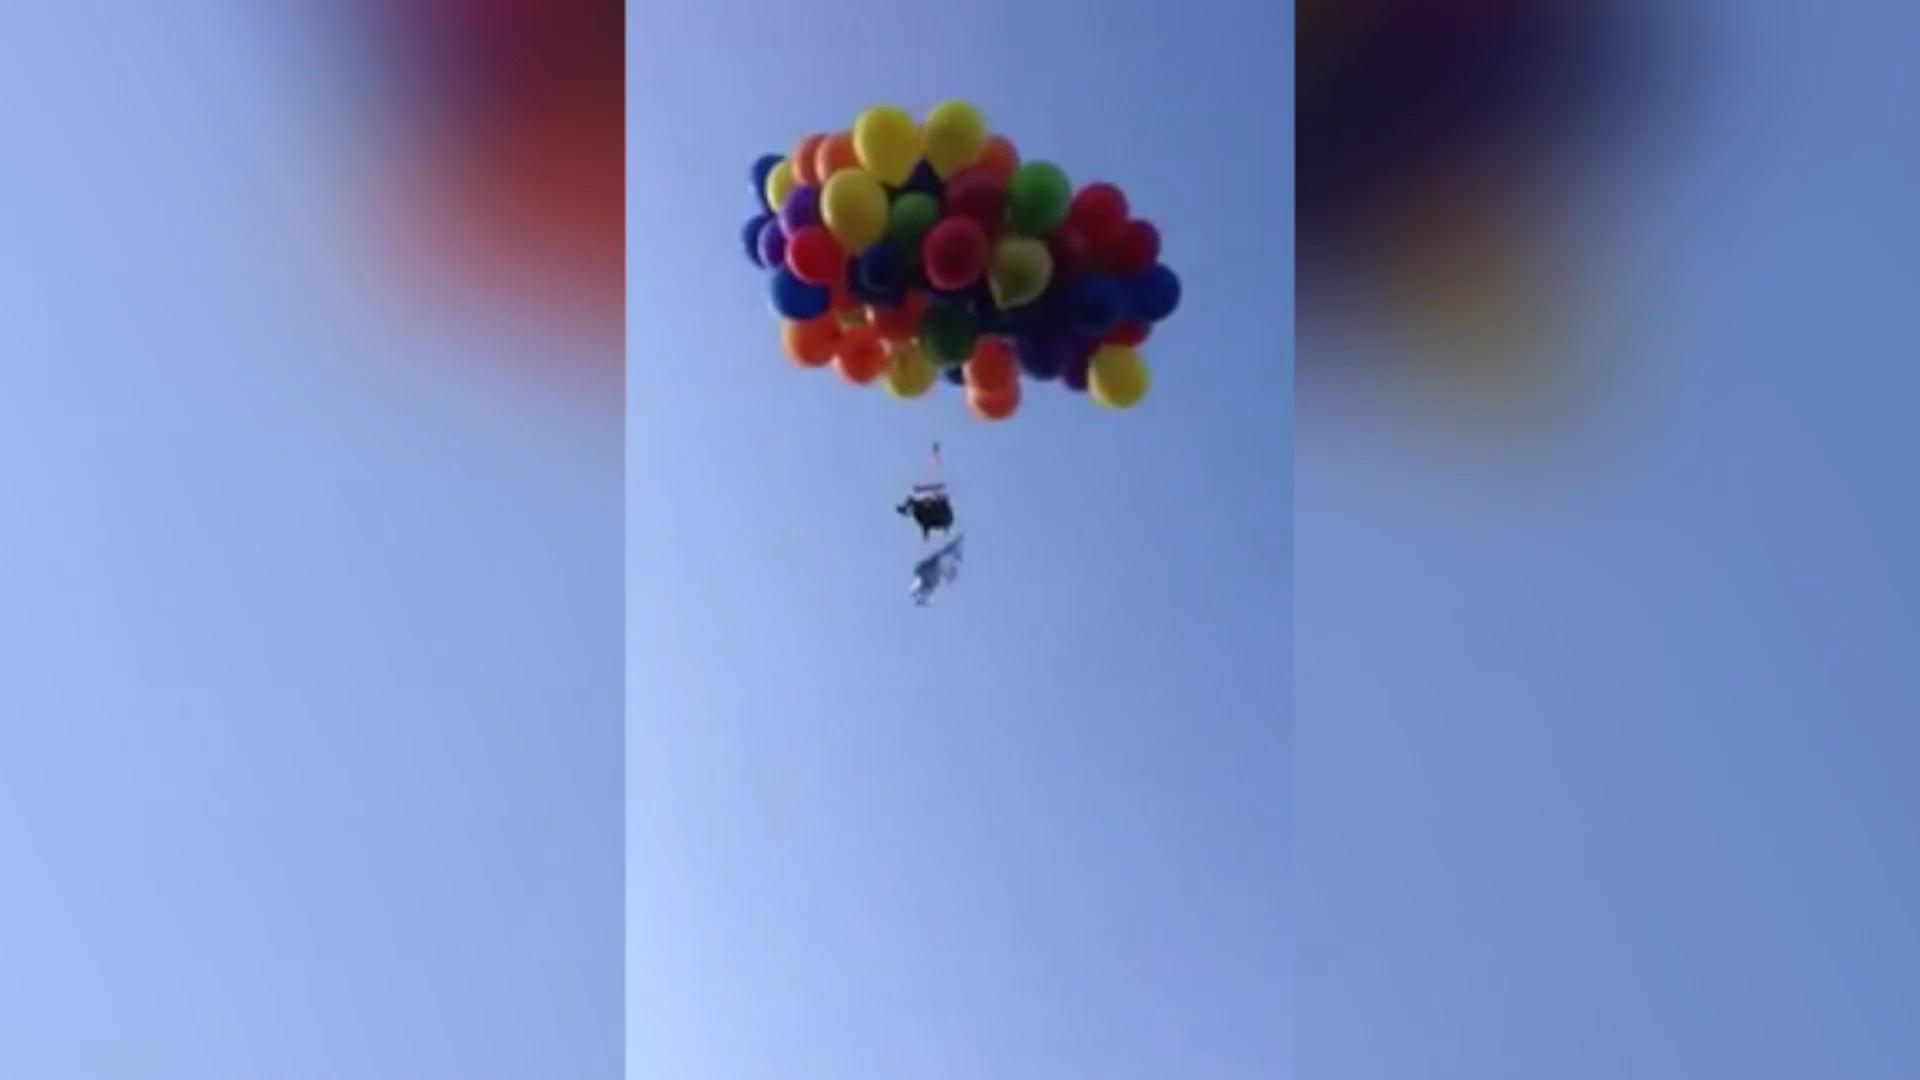 chair with balloons chippendale side man faces charges after flying lawn 100 over canada